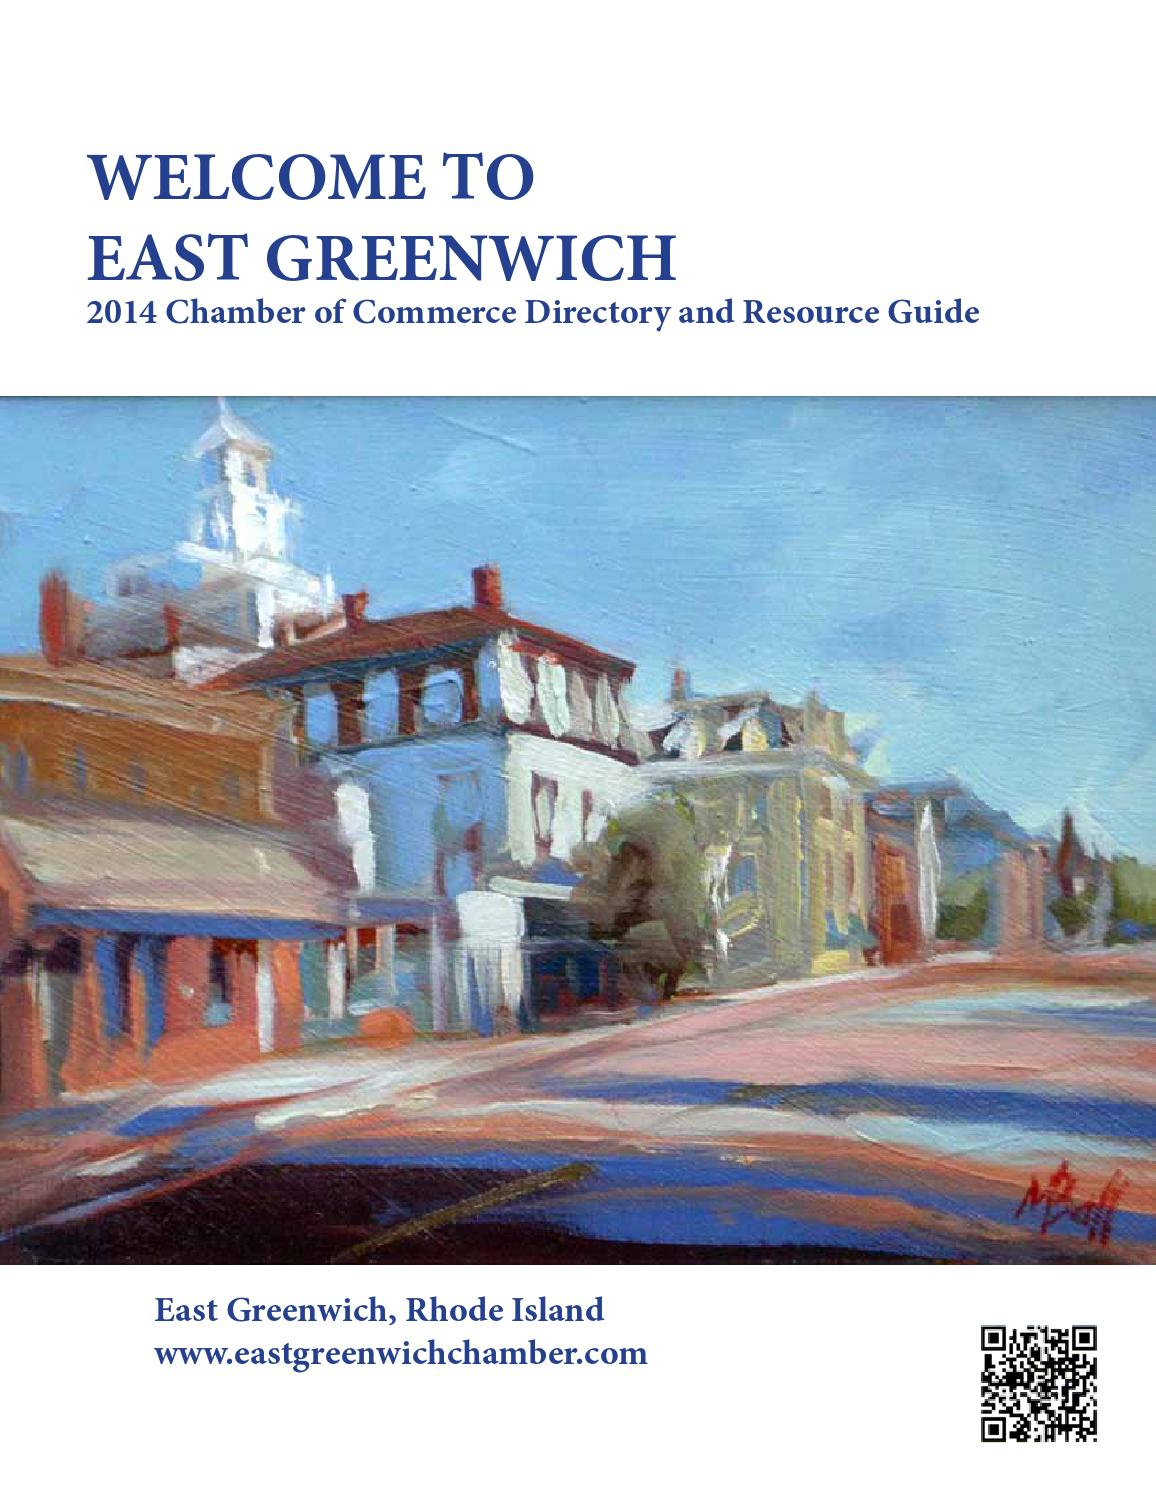 2014 welcome to east greenwich by east greenwich chamber of commerce issuu